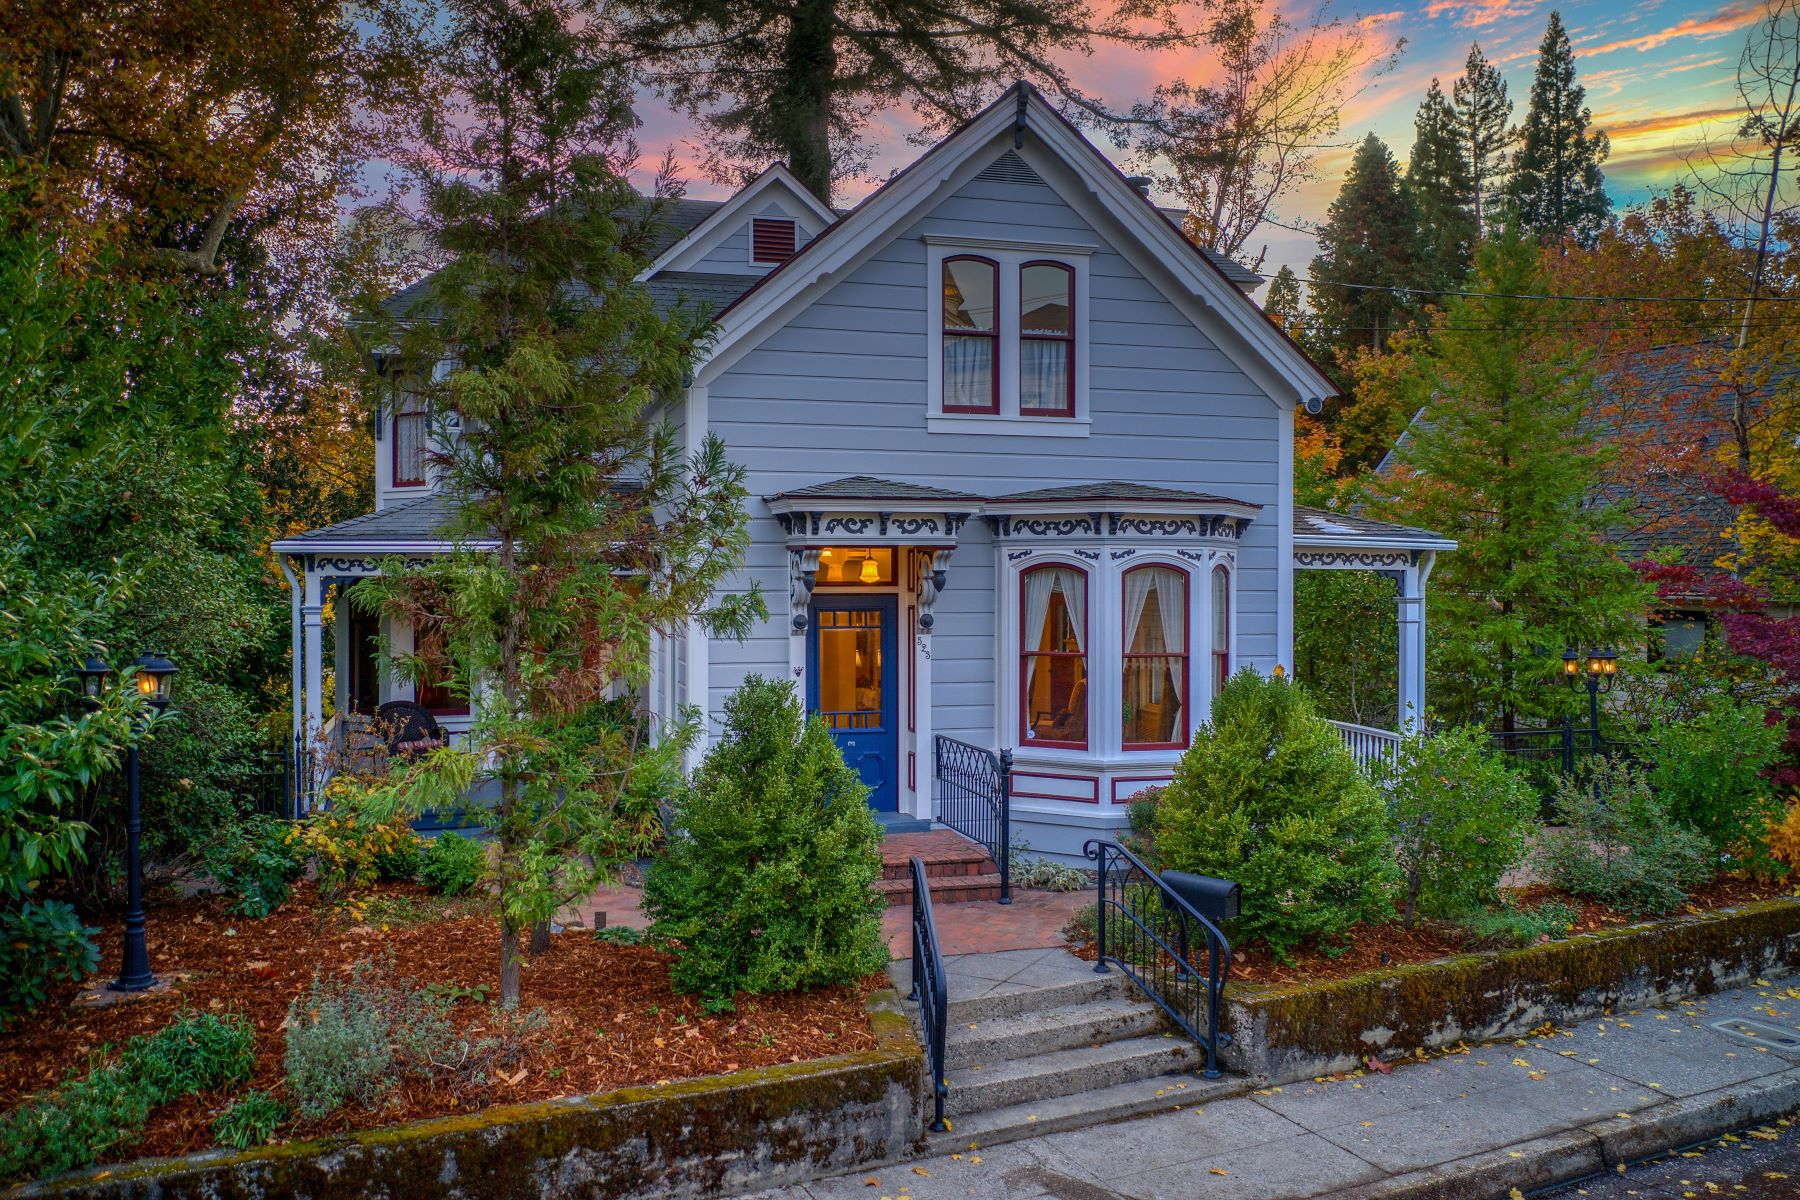 Single Family Homes for Active at 523 W Broad Street, Nevada City, CA 95959 523 W. Broad Street Nevada City, California 95959 United States